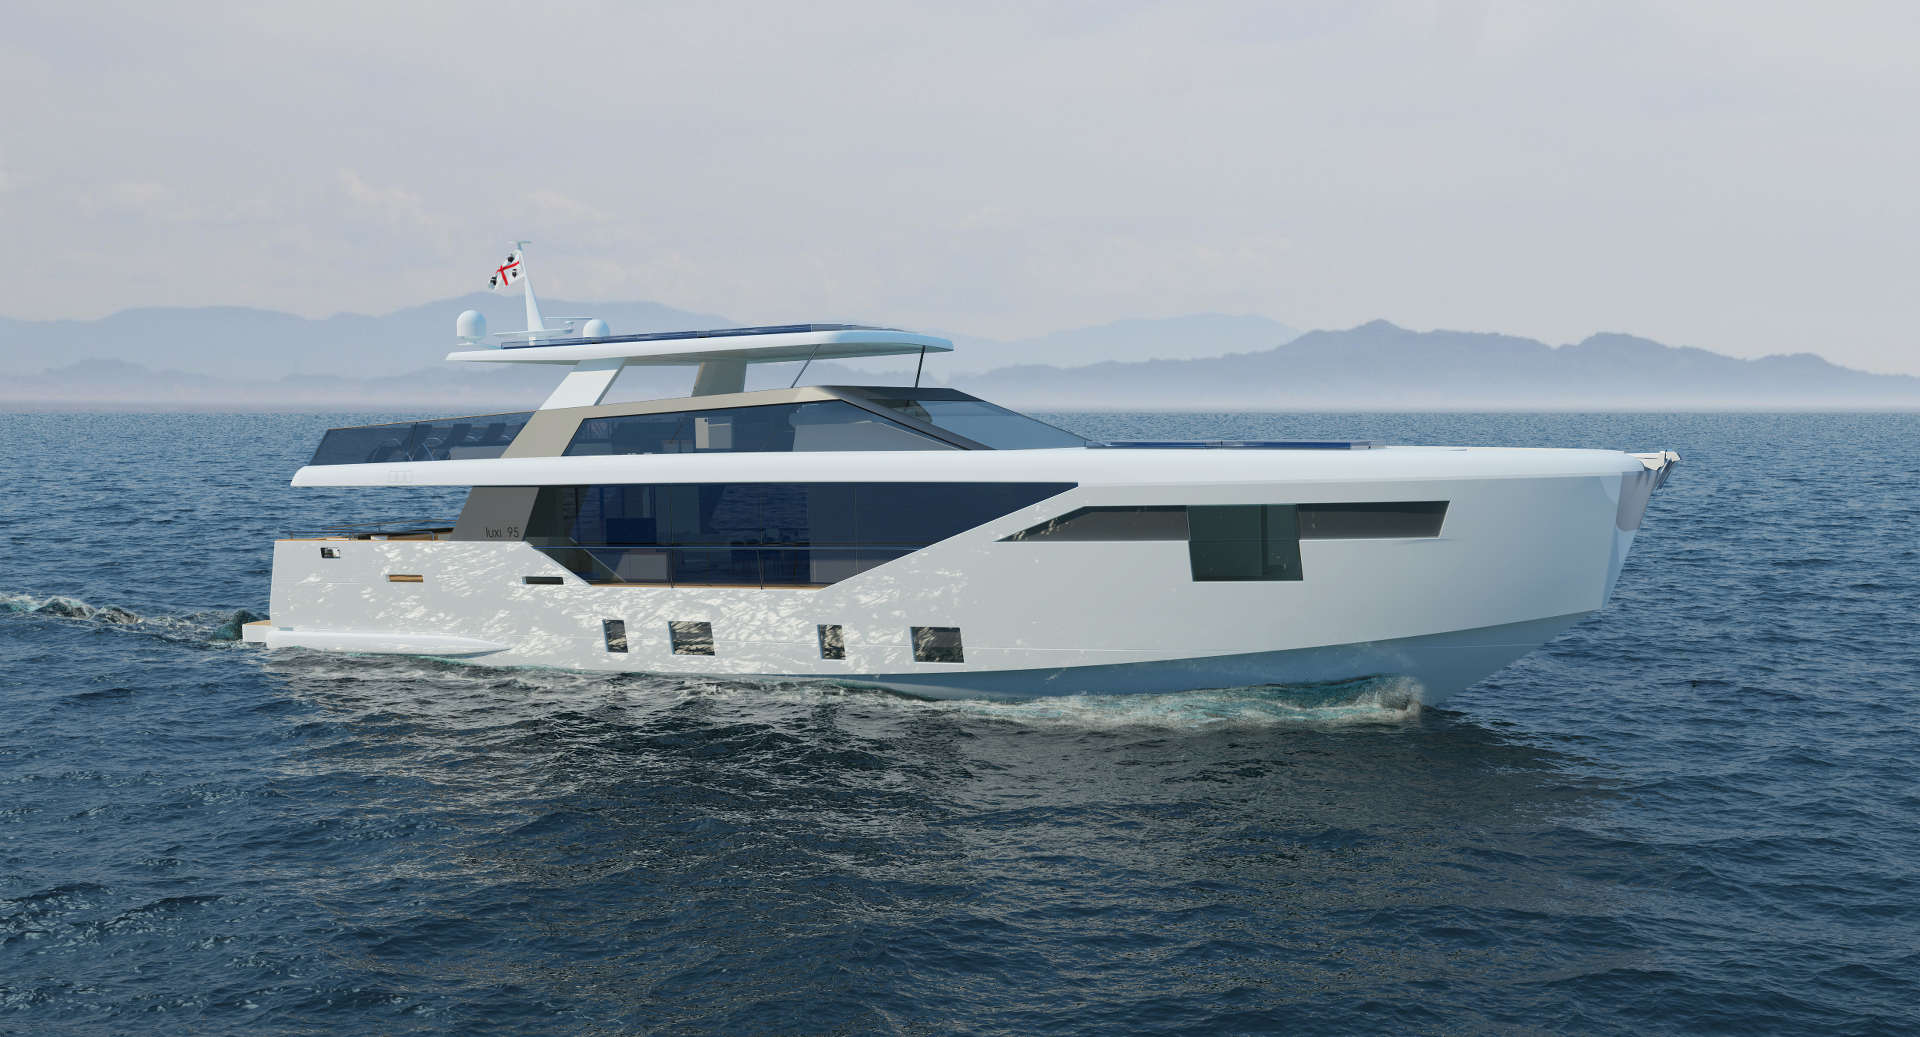 Luxi95, The Ultimate Solar Motoryacht